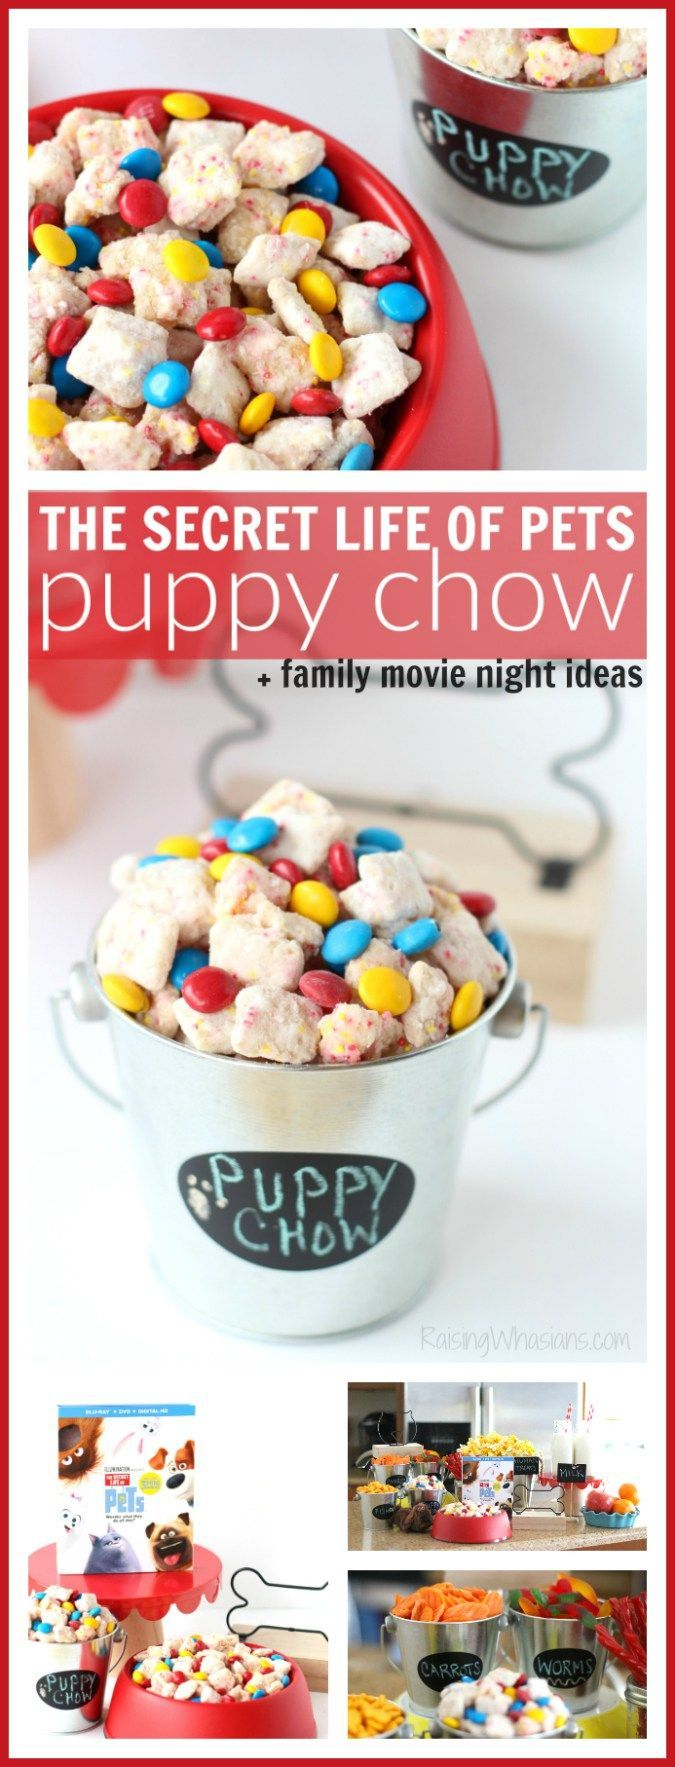 The Secret Life of Pets Puppy Chow + Family Movie Night Ideas | Ideas to host your own The Secret Life of Pets Movie Party at Home – Raising Whasians #TheSecretLifeOfPets #PetsPack #ad